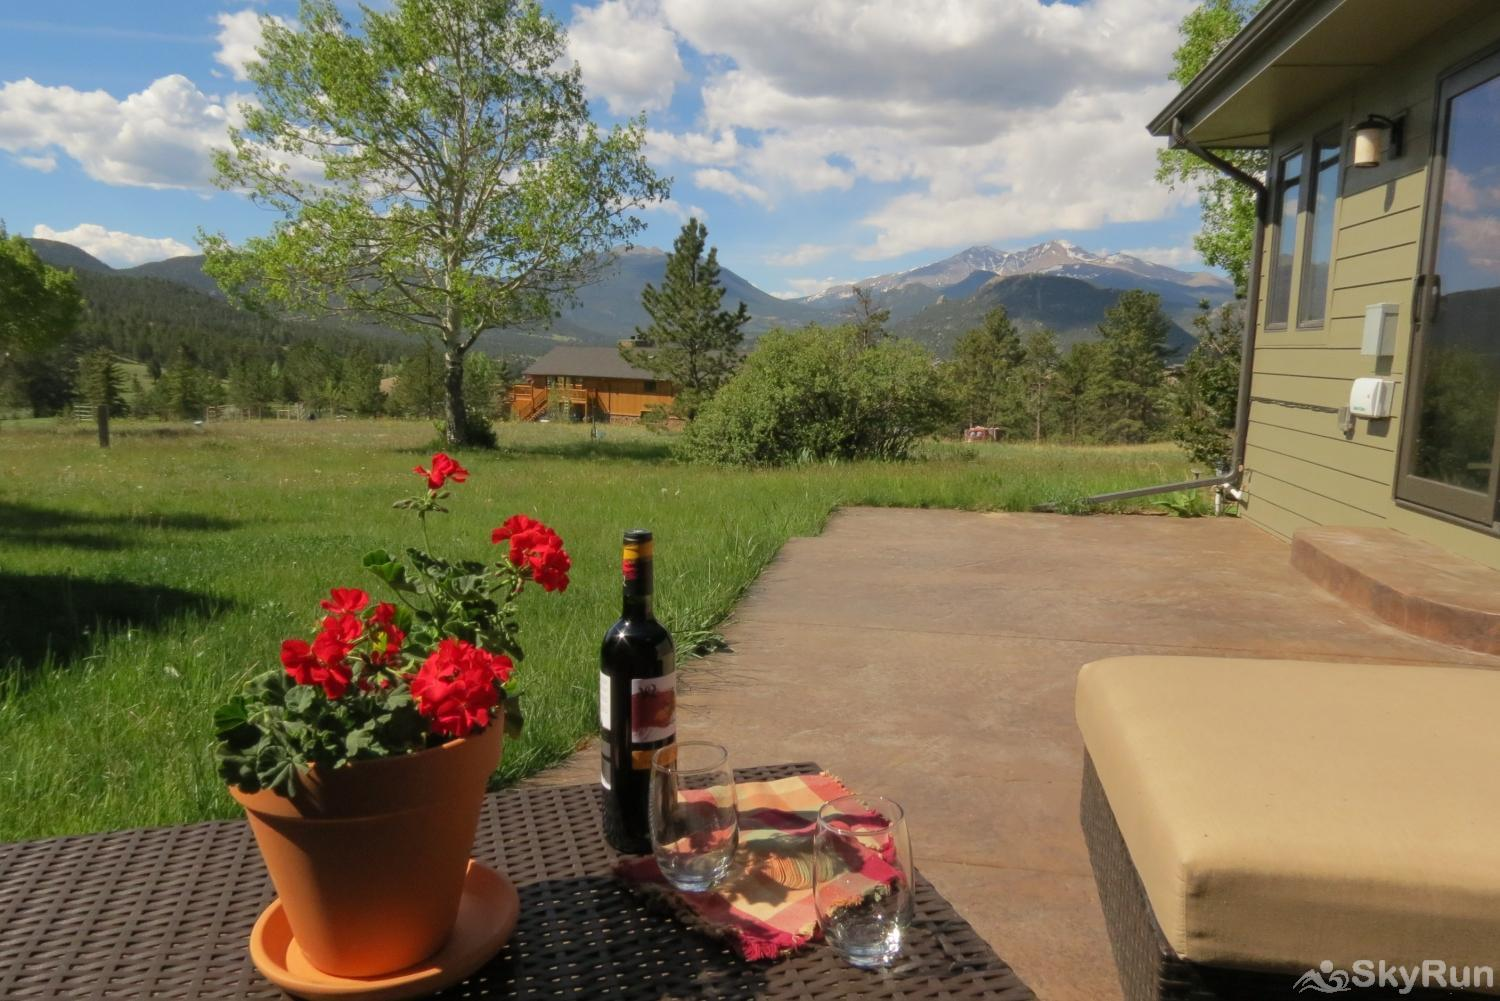 Snowline Vista Lodge -- EV #3296 Snowline Vista Lodge -- E.V. Reg #